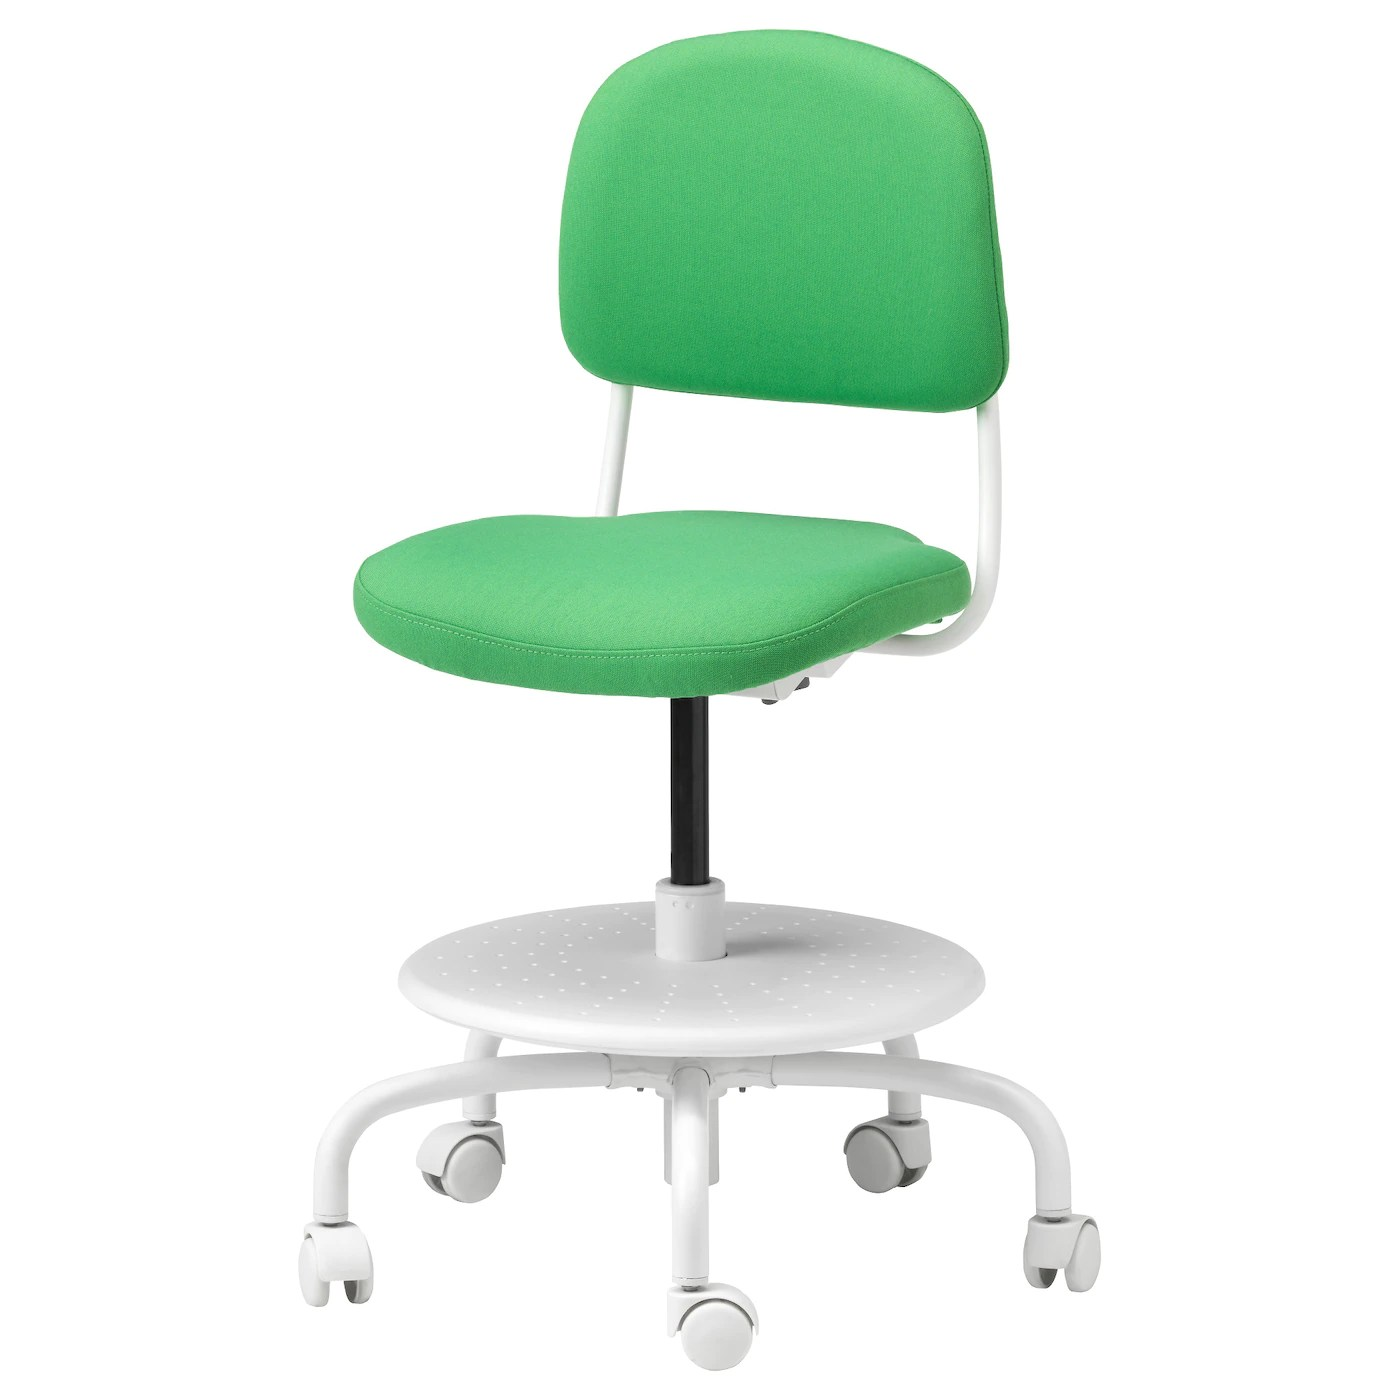 Ikea Desk Chair Vimund Children 39s Desk Chair Vissle Bright Green Ikea